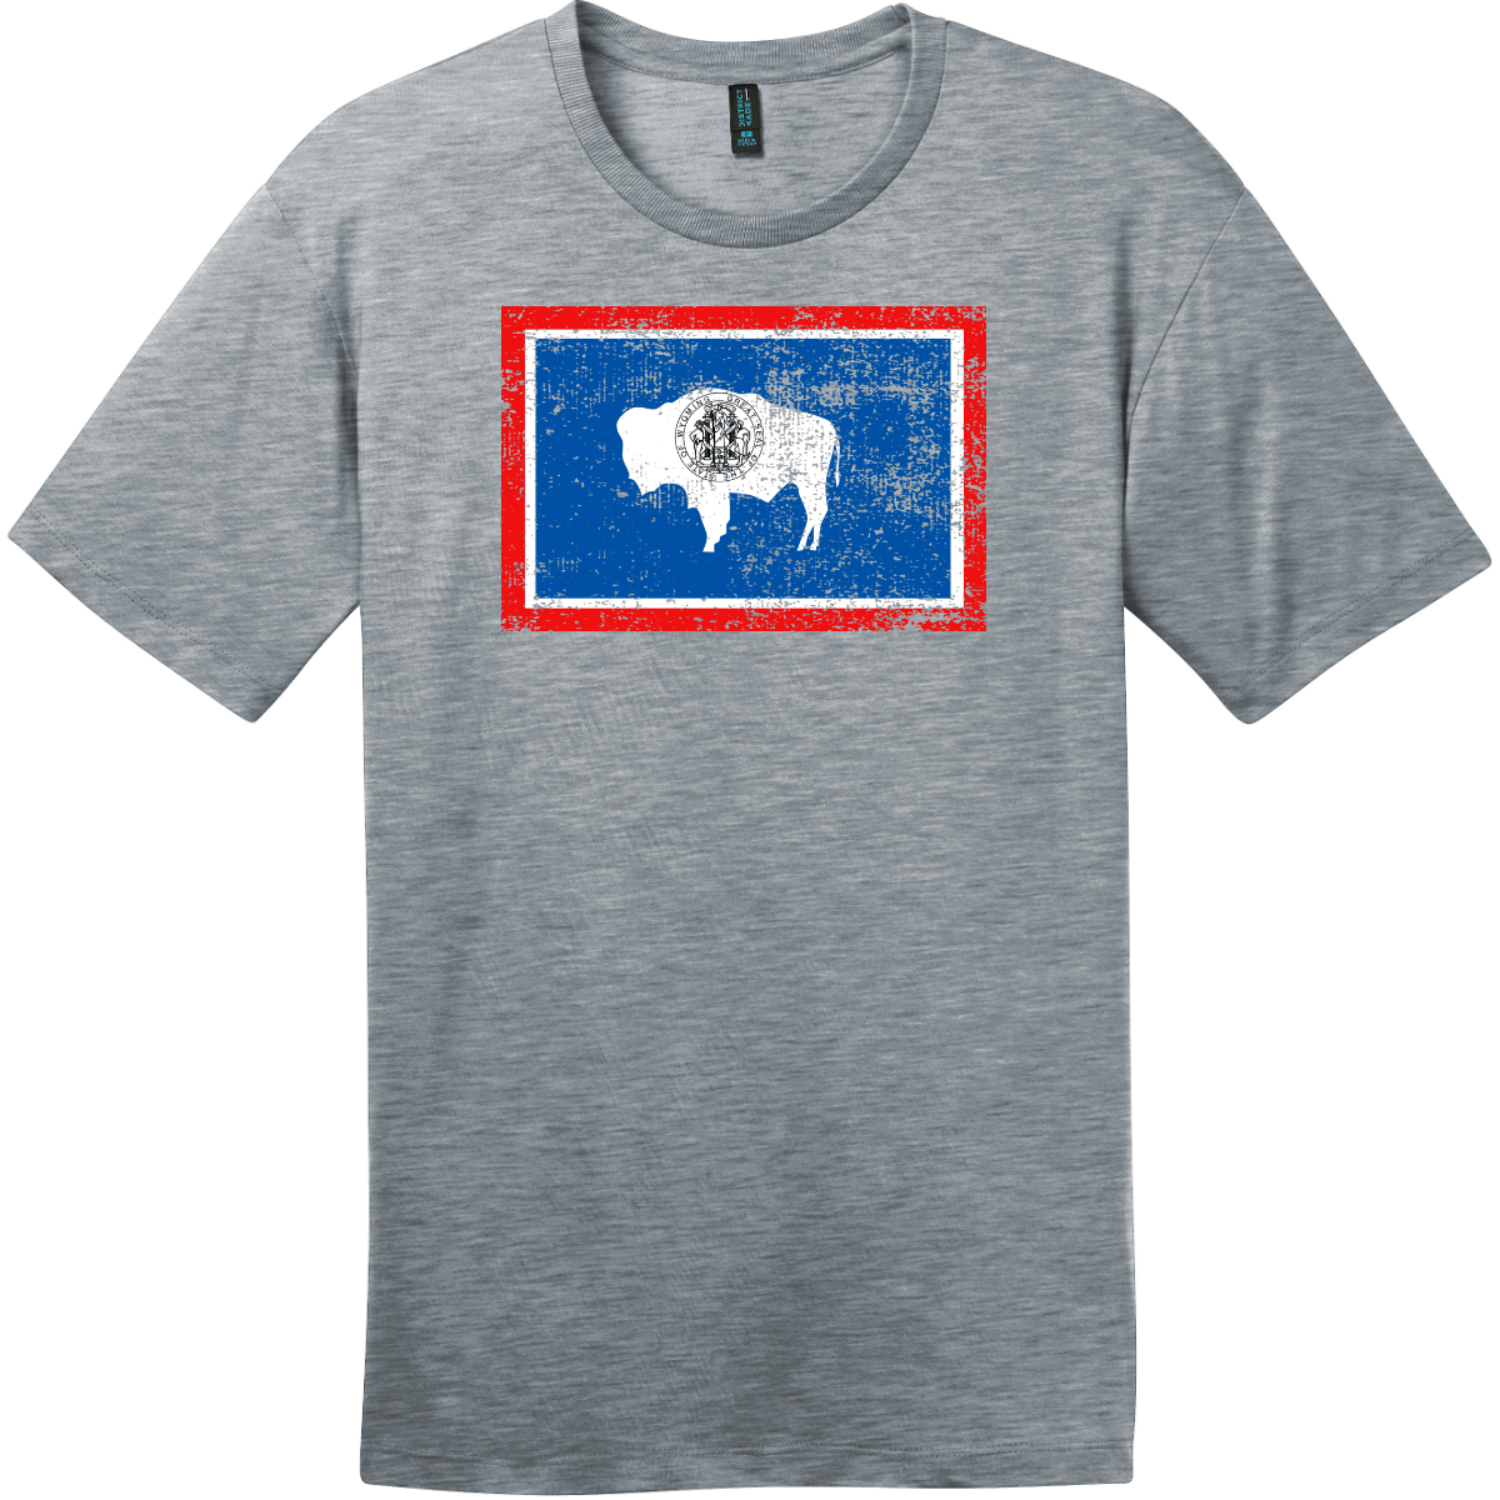 Wyoming Flag Distressed Vintage T-Shirt Heathered Steel District Perfect Weight Tee DT104